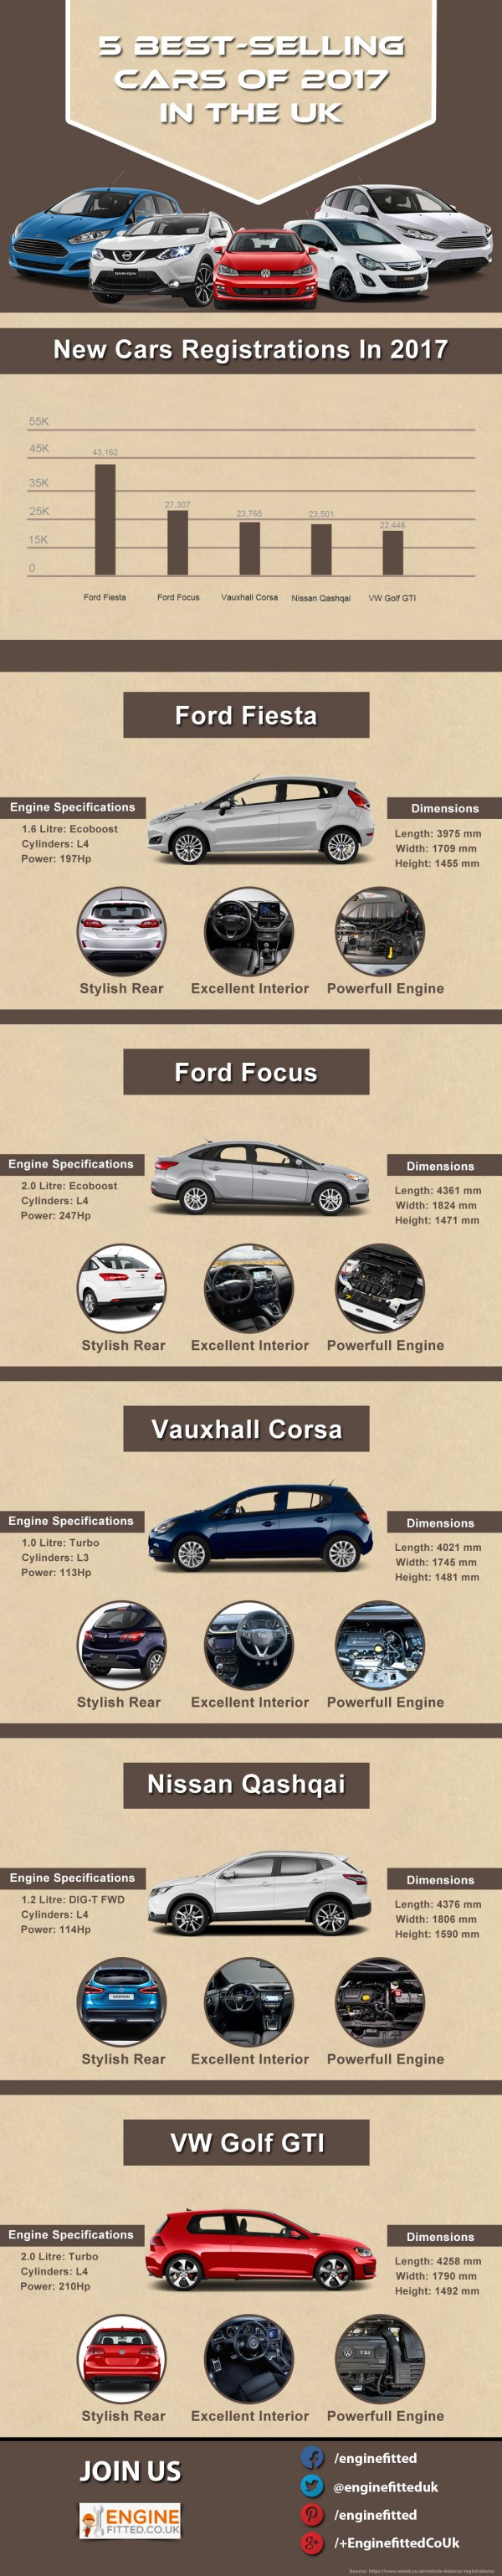 5-Best-Selling-Cars-Of-2017-In-The-UK-infographic-galleryr